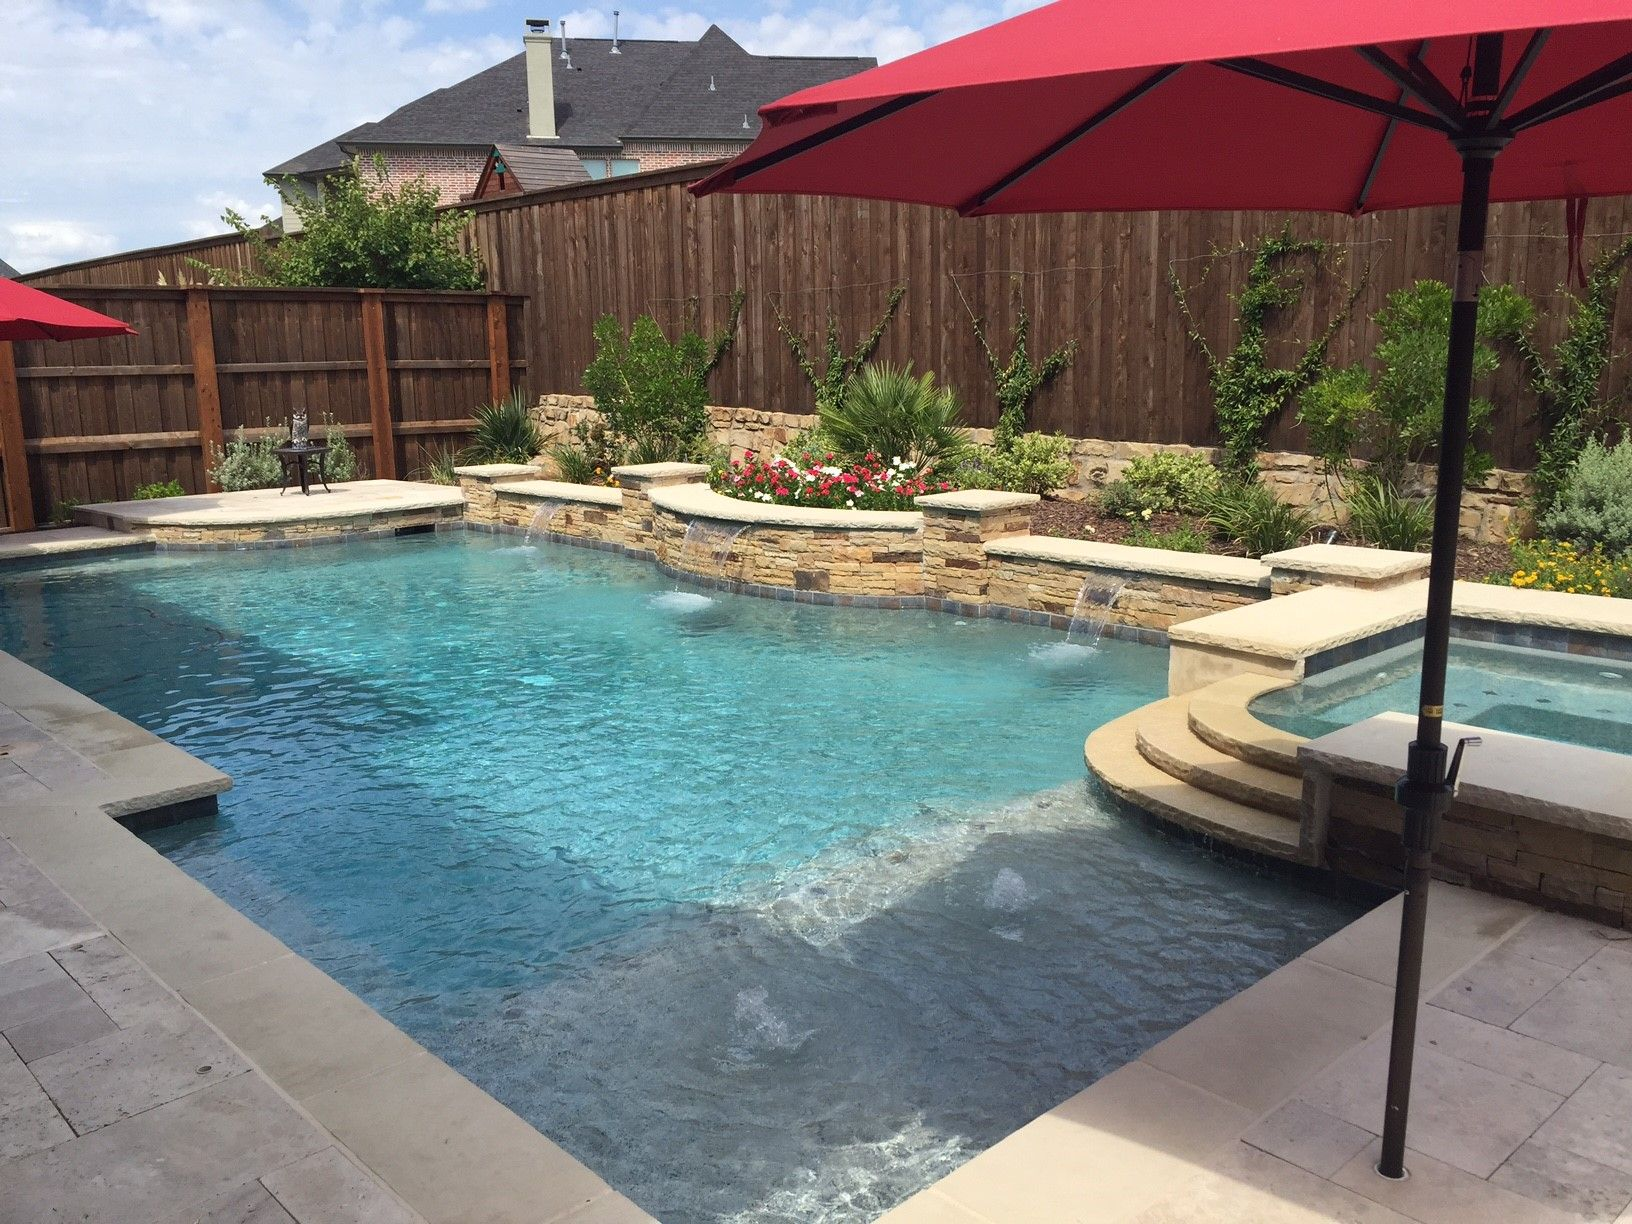 Dallas formal pools rockwall custom pool formal pool Swimming pool styles designs